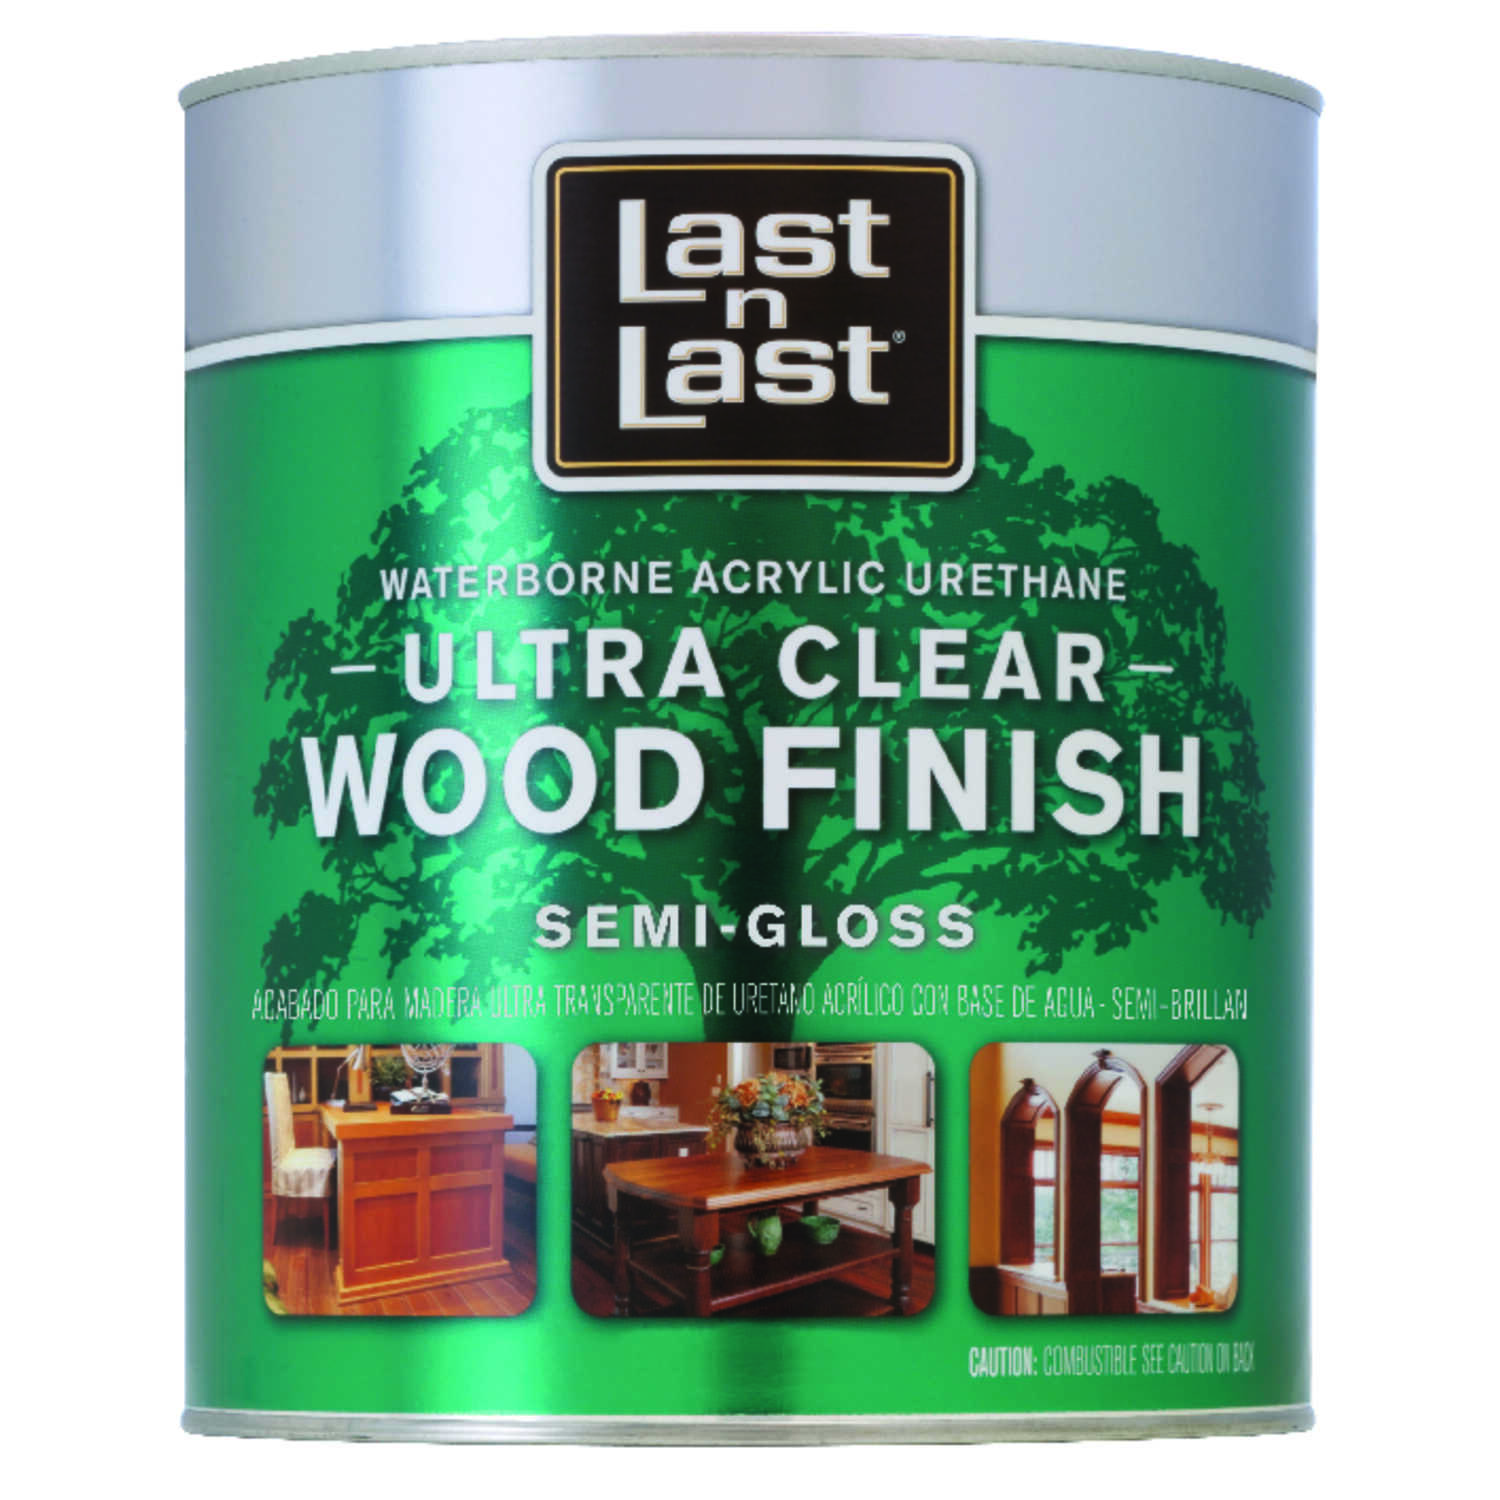 Last N Last  Waterborne Wood Finish  Clear  Semi-Gloss  Polycrylic  1 gal.